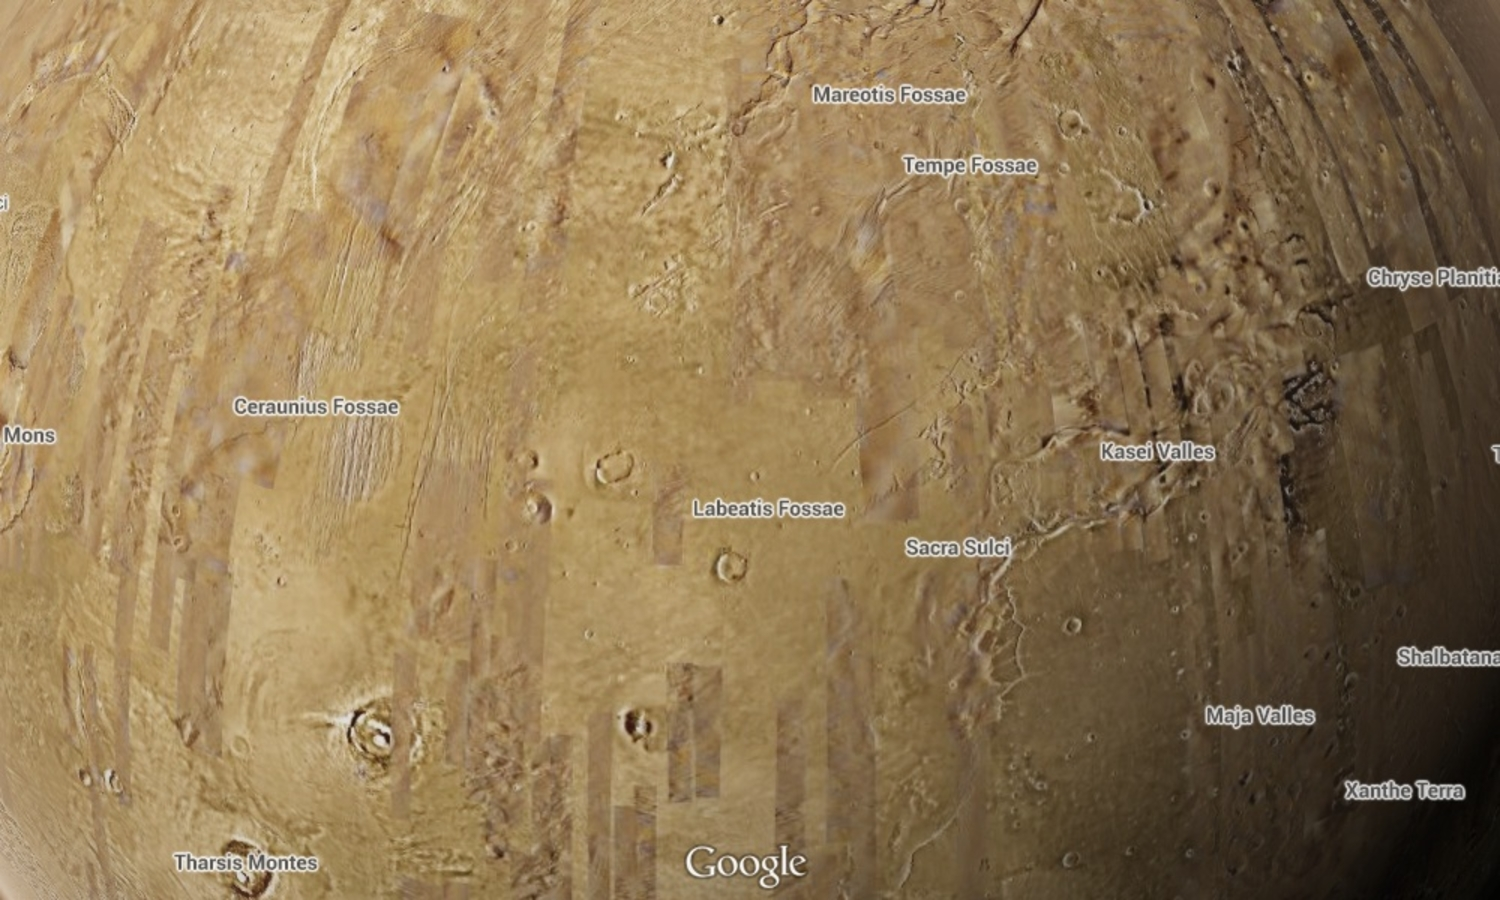 Explore mars And The Moon On Google maps With These Secret Steps